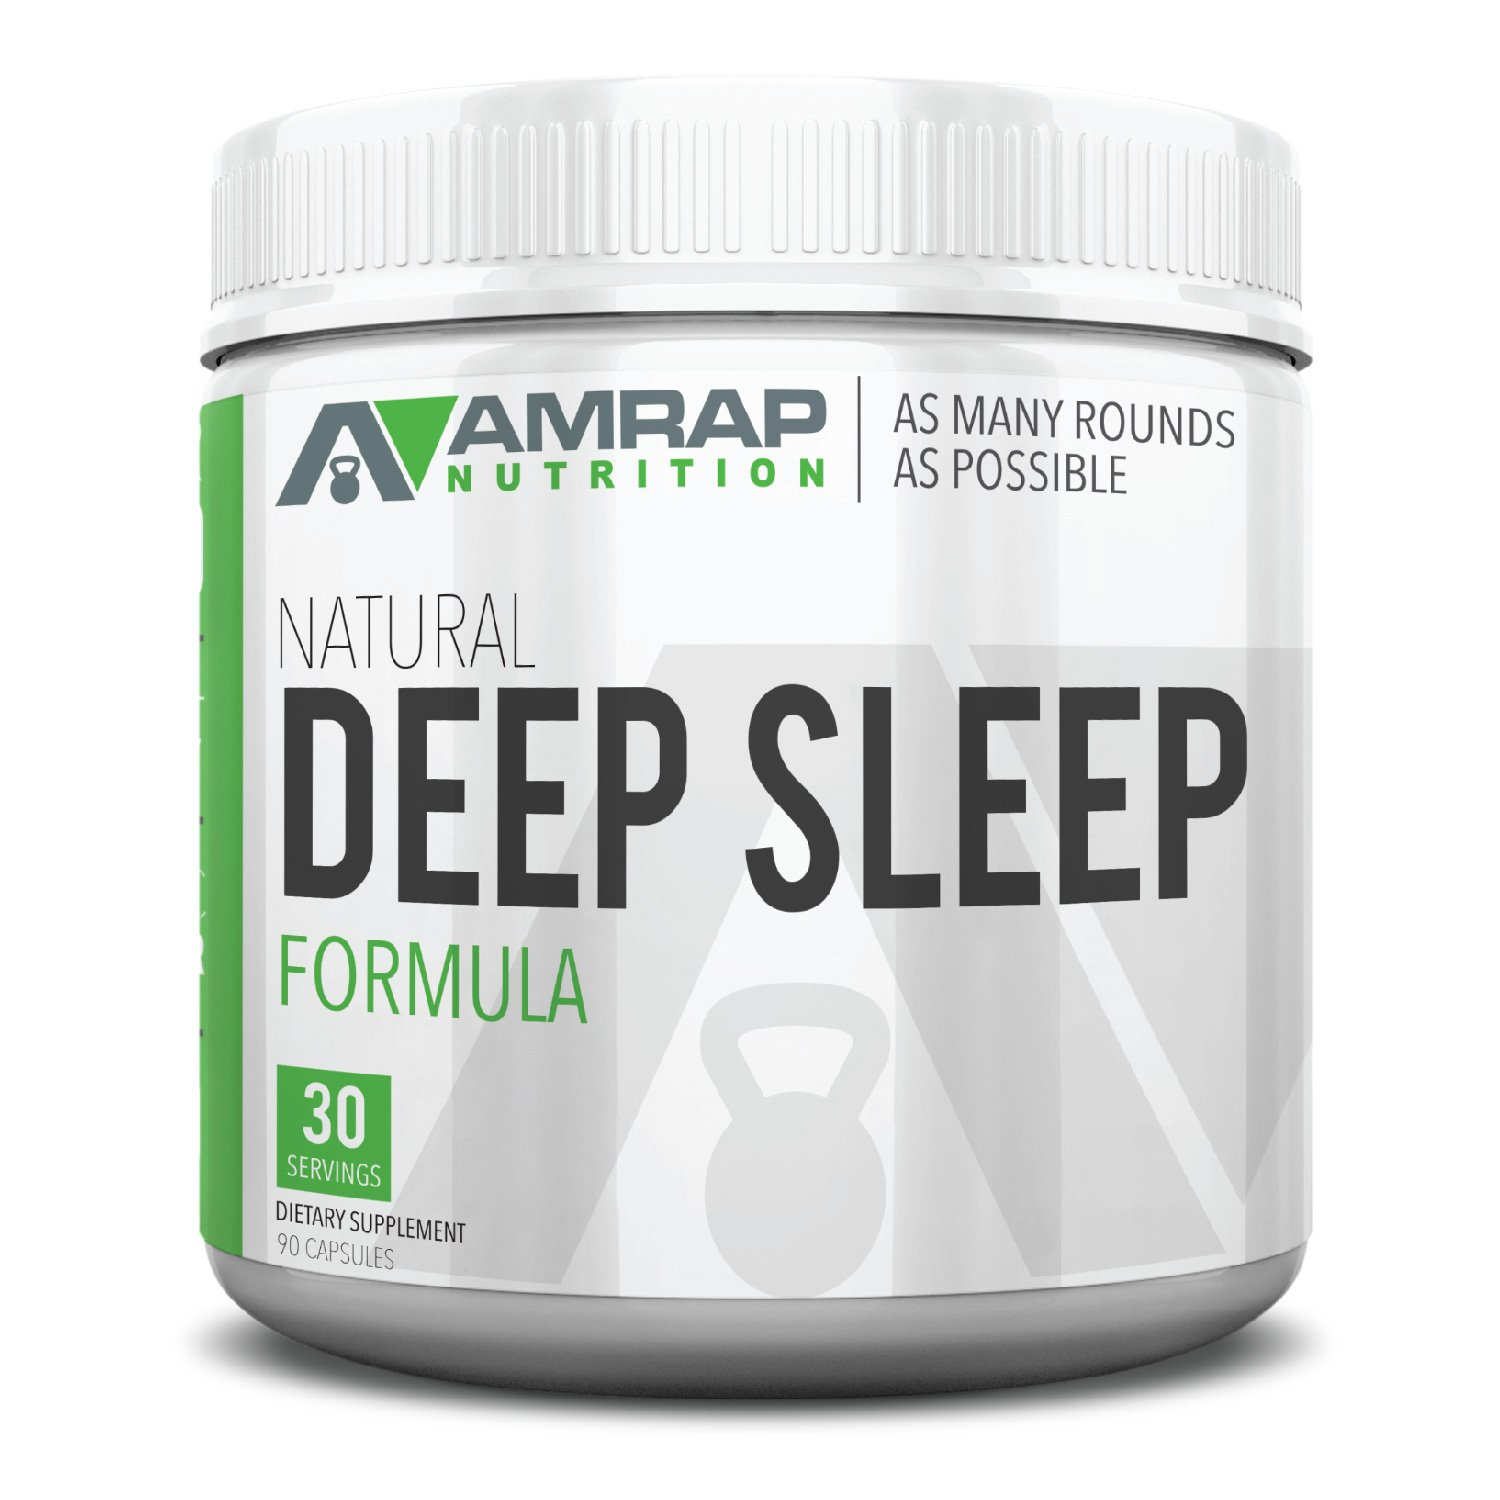 AMRAP Nutrition – Natural Deep Sleep Formula – Post-Workout Recovery Aid Promotes Deep Sleep and Proper Muscle Function – Supports Natural Anabolic Levels – with 72 Essential Trace Minerals